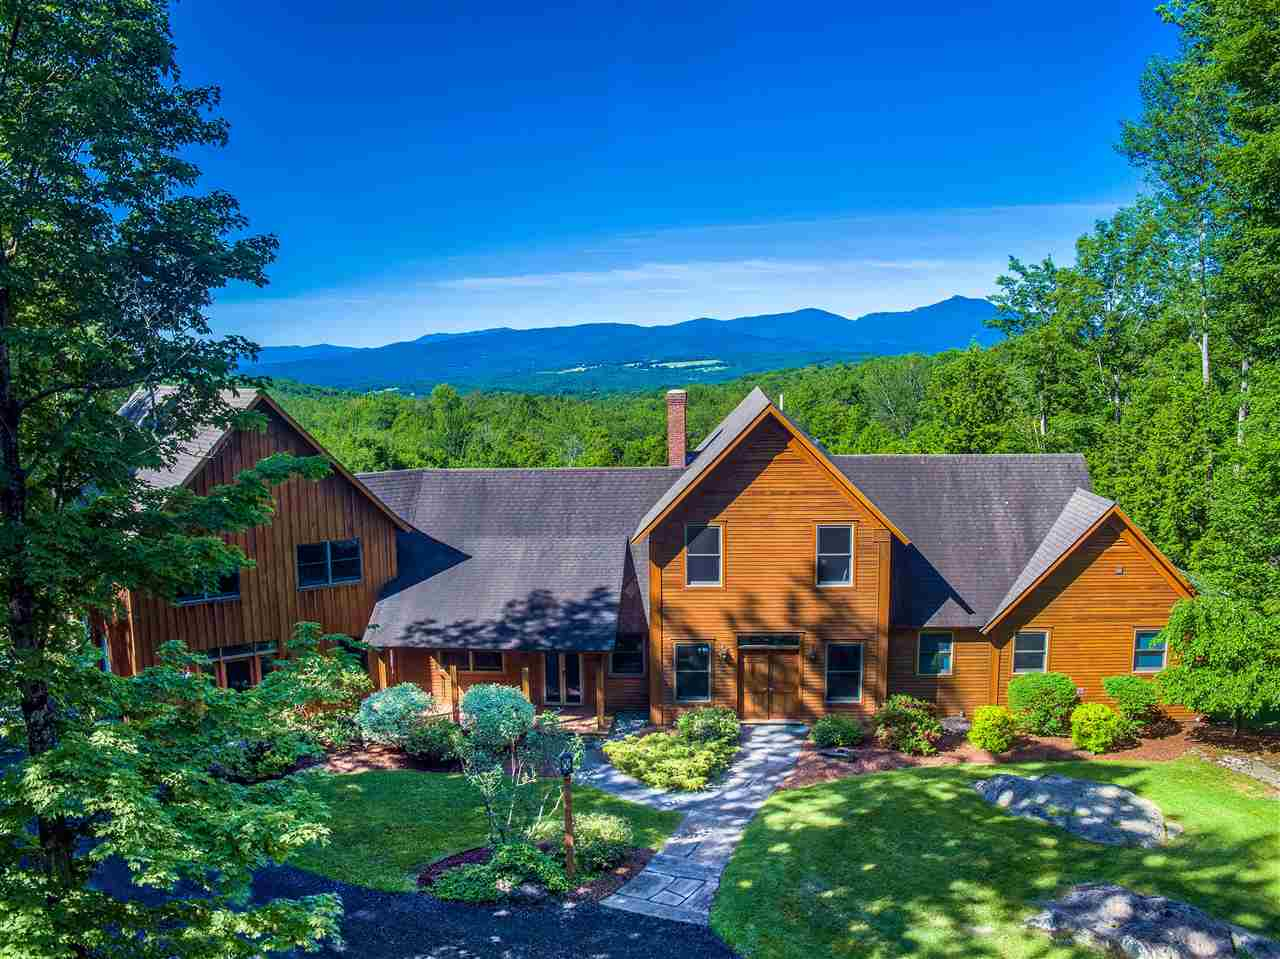 4702774 - 1015 South Hollow Road Stowe VT, 05672, Stowe